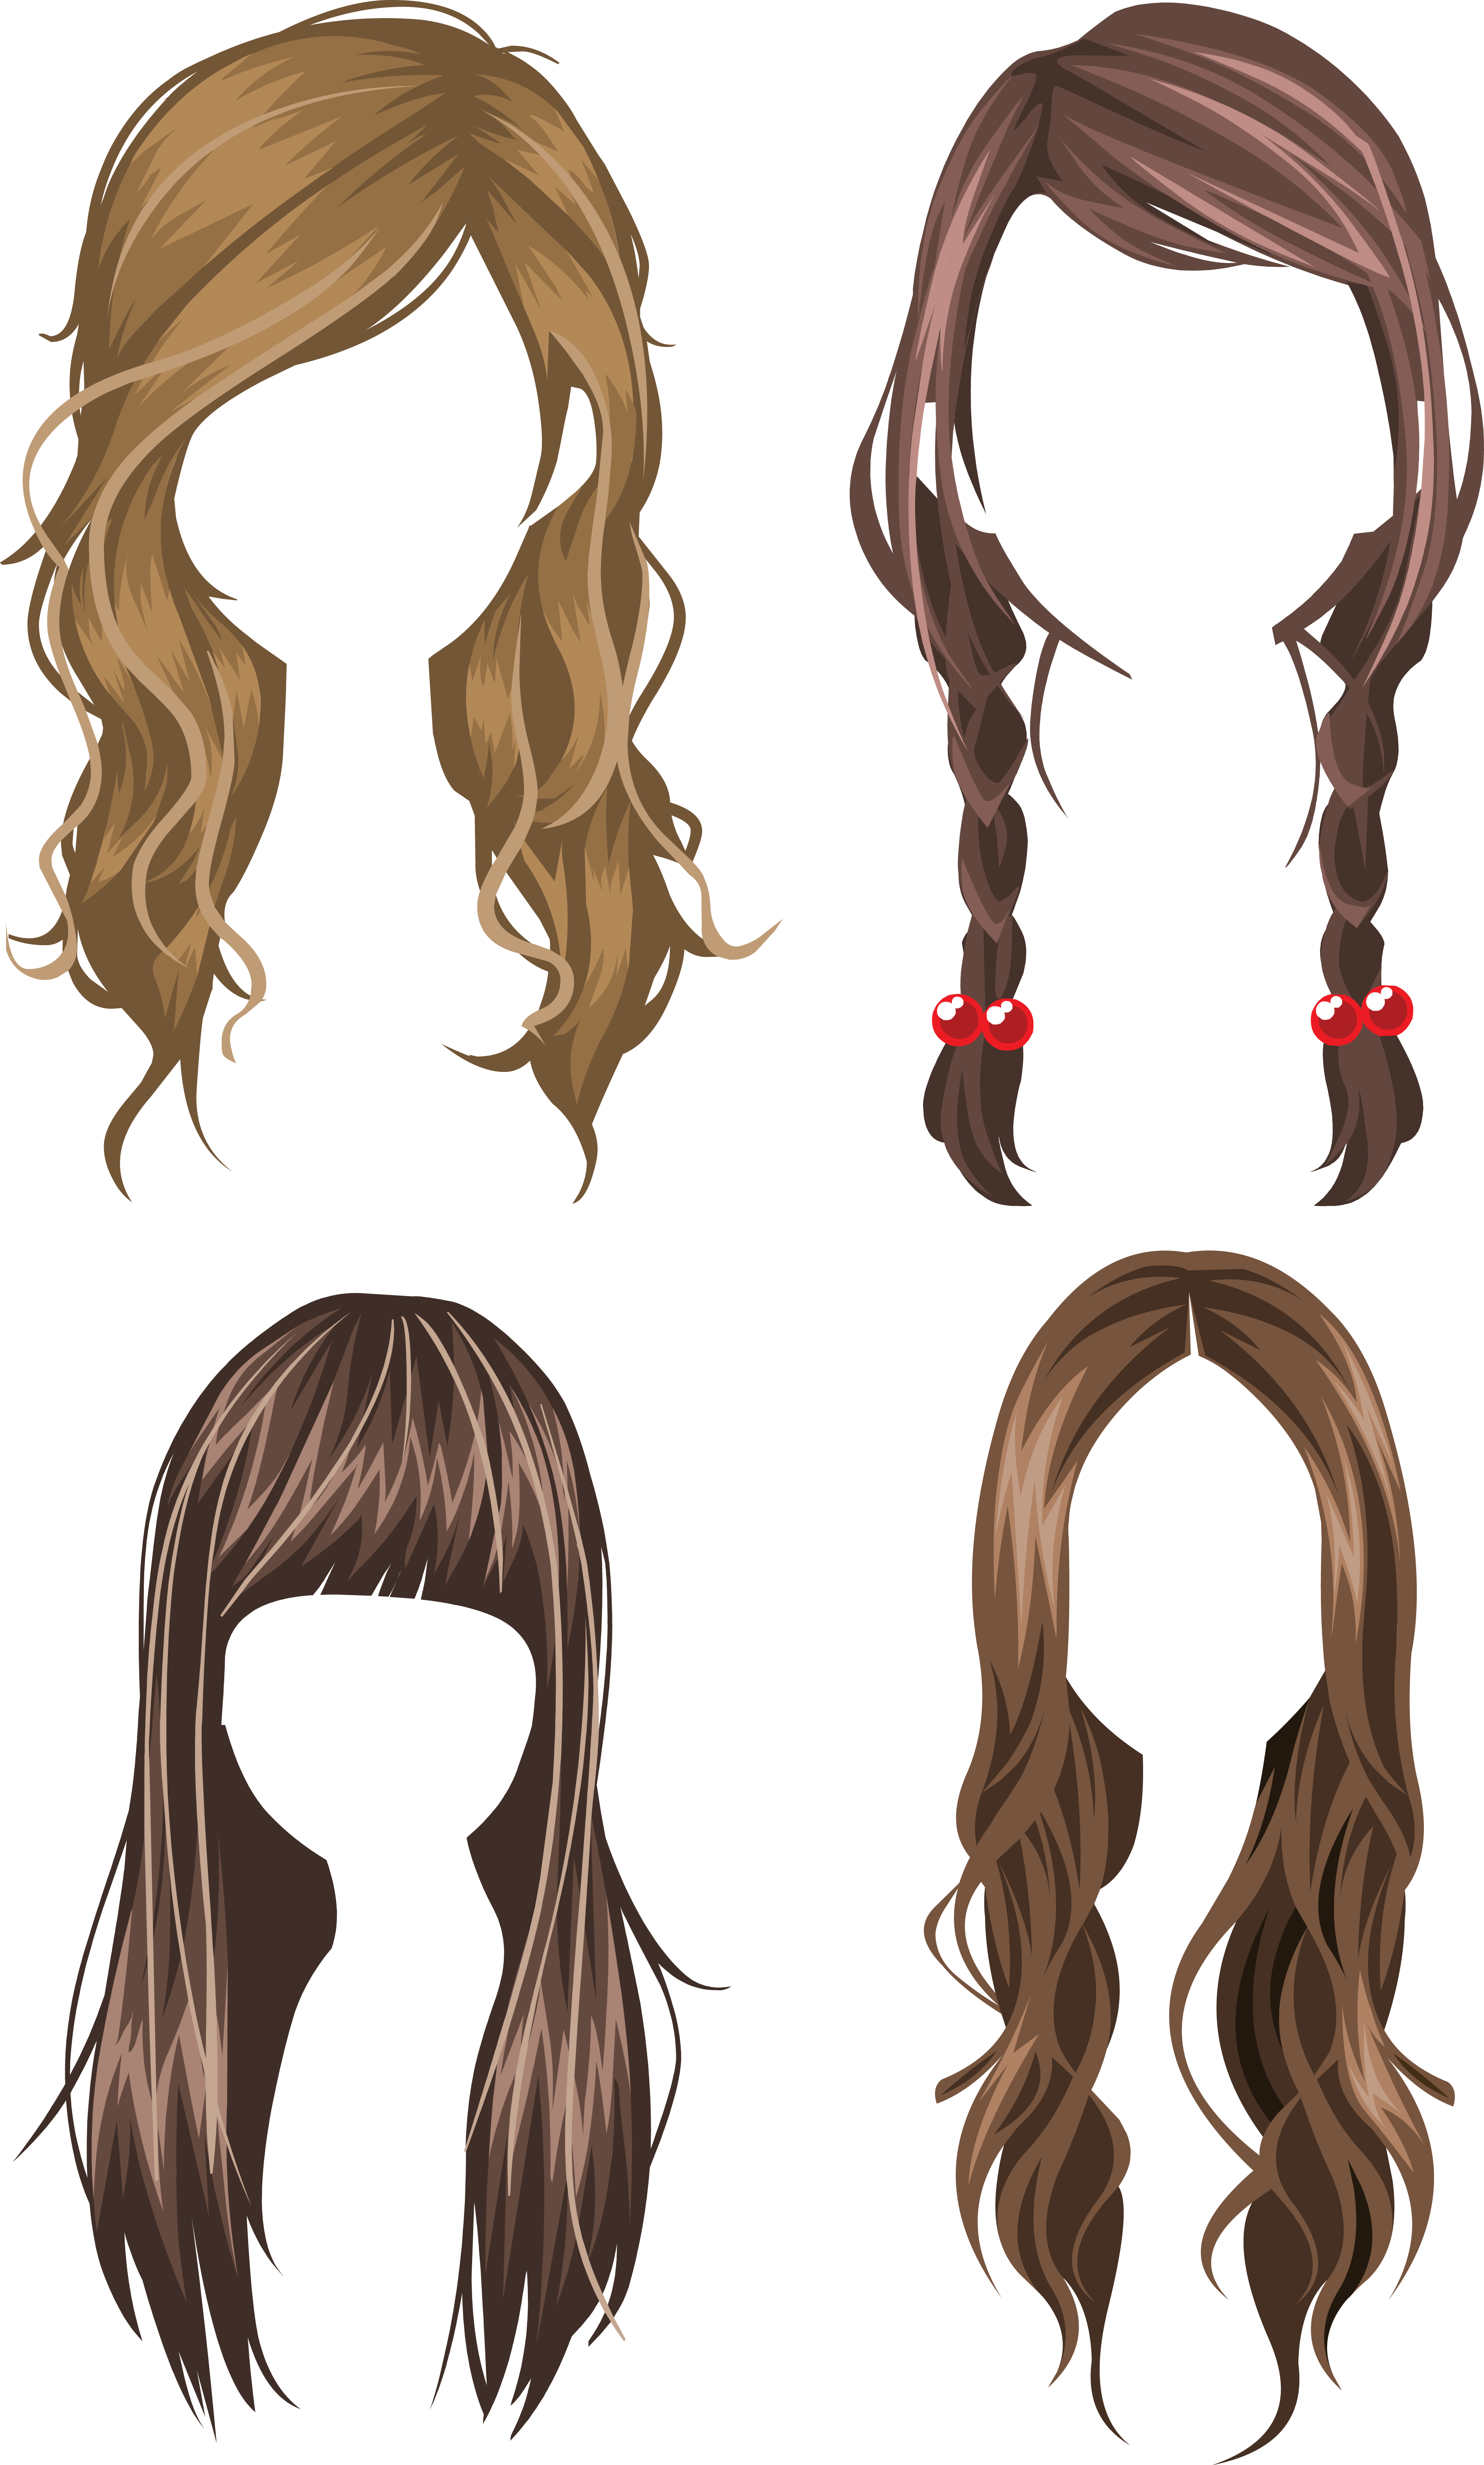 17 century wig clipart png svg free download Hair wig PNG svg free download